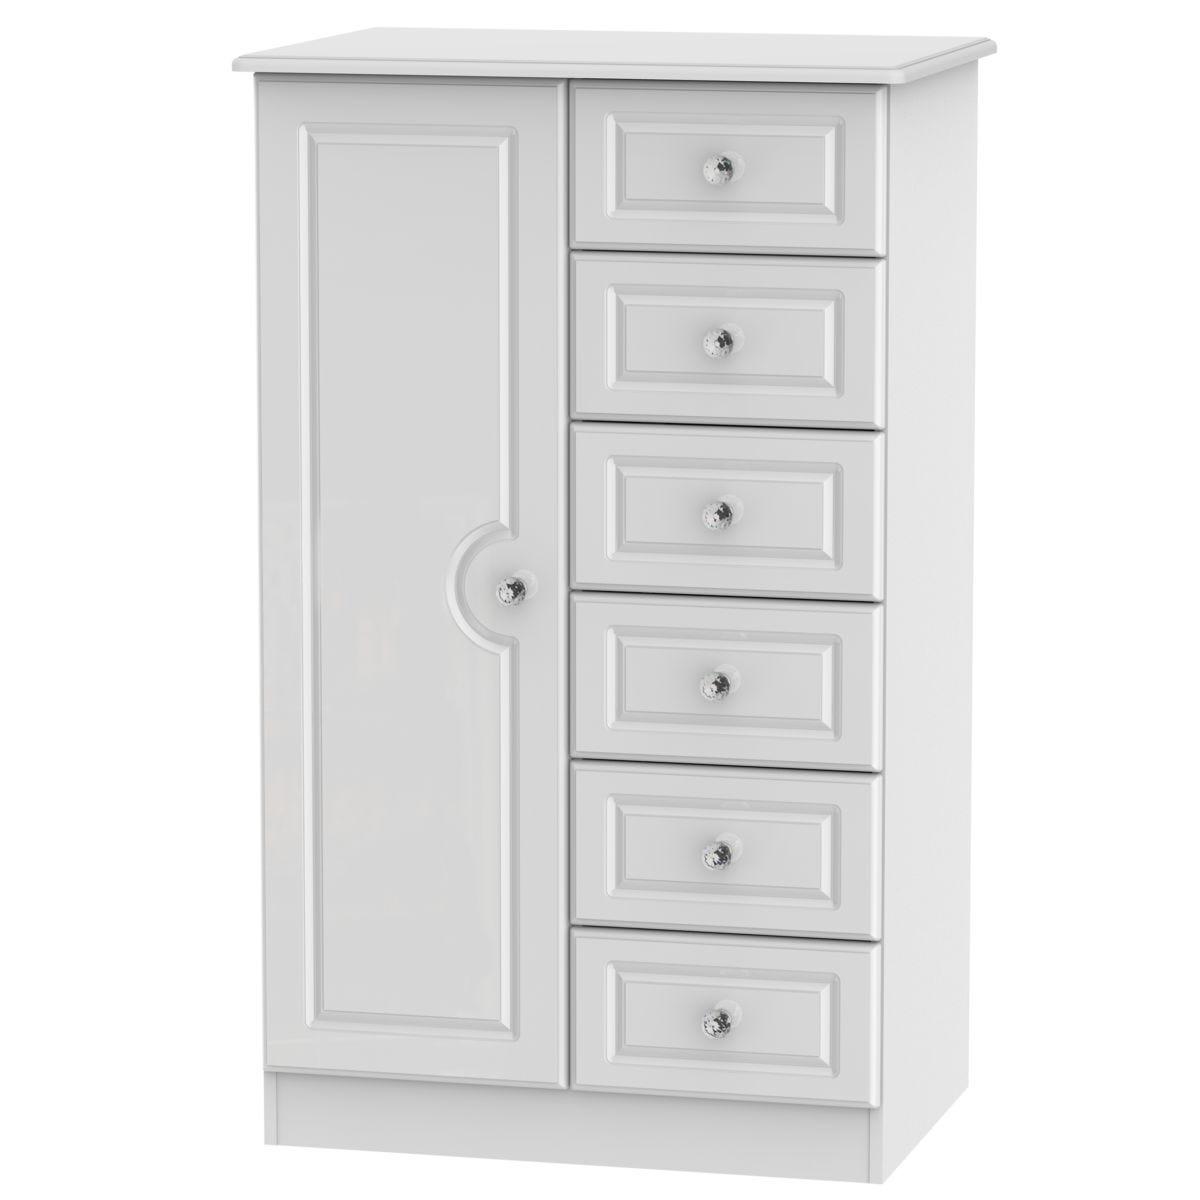 Berryfields Children's Wardrobe - White